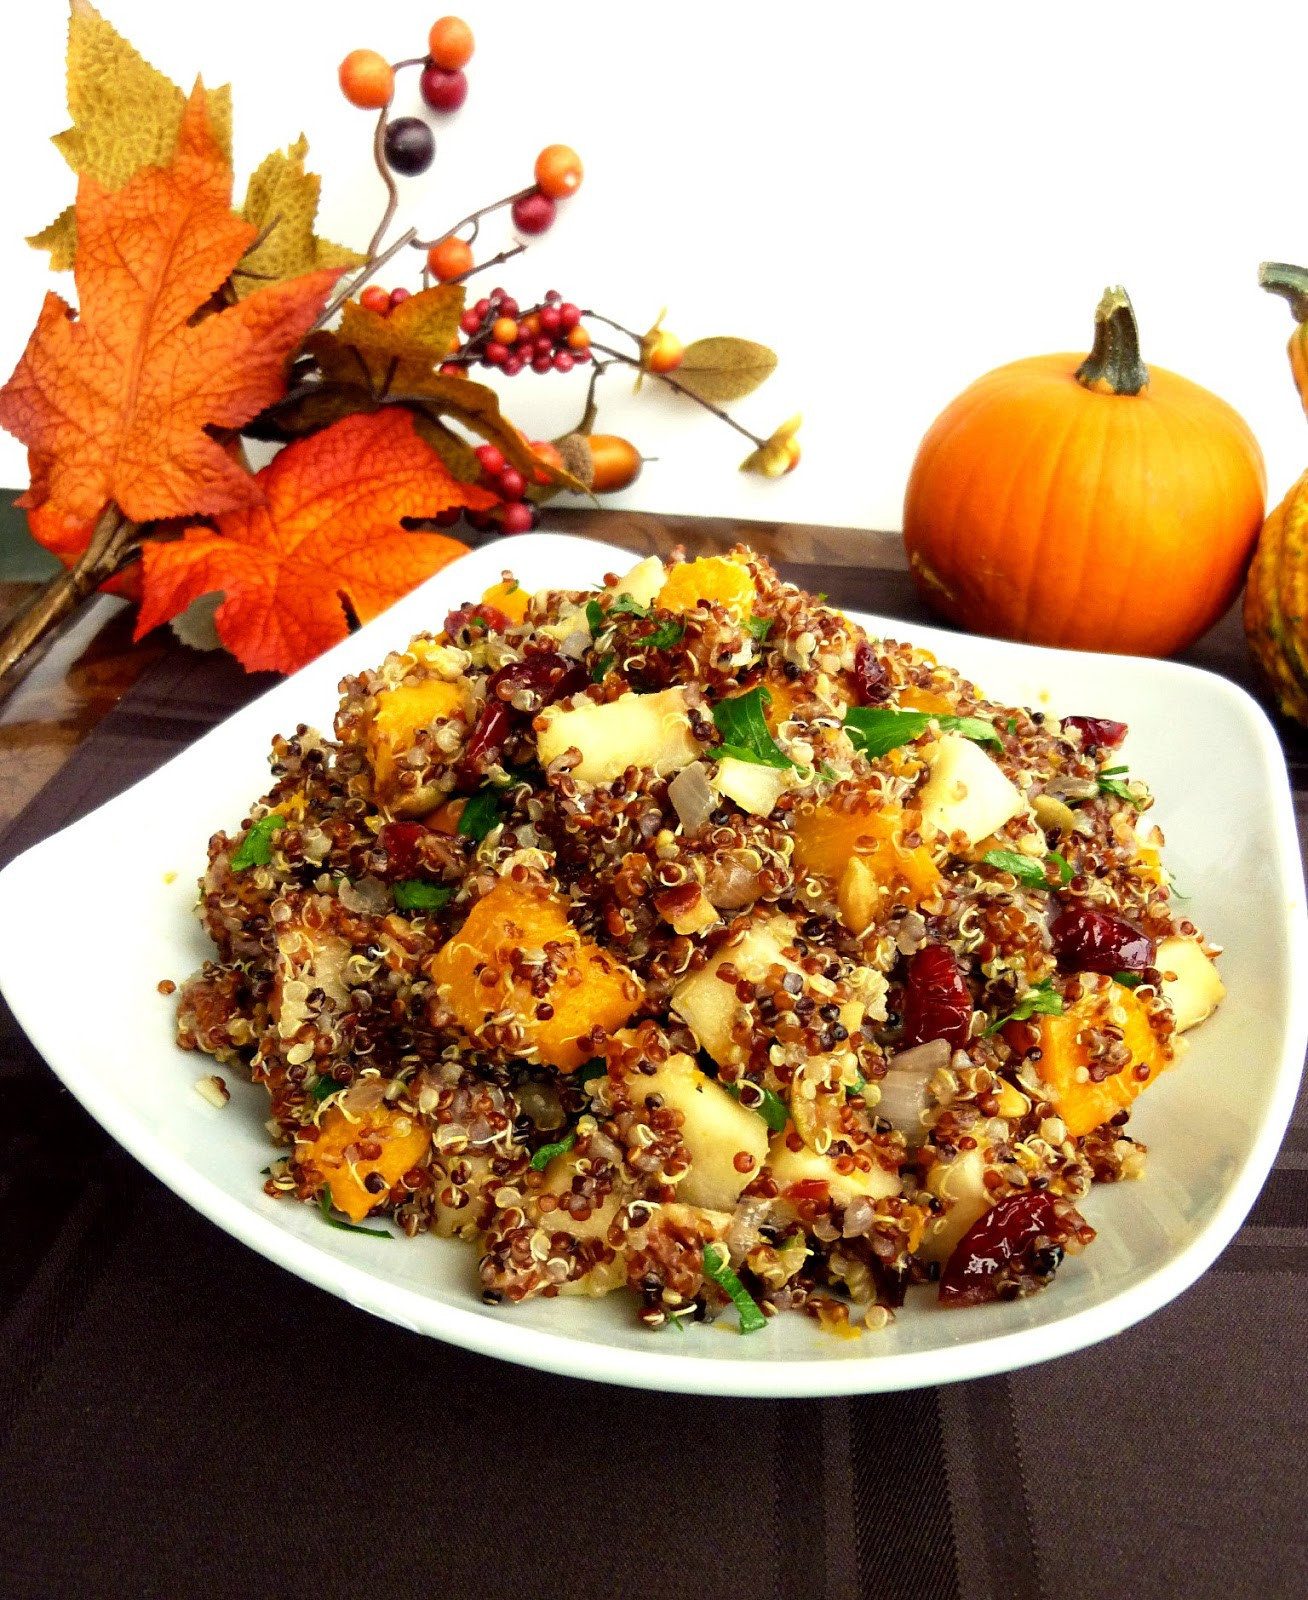 Vegetarian Thanksgiving Main Dish  Vanilla & Spice Recipes for a Ve arian Thanksgiving